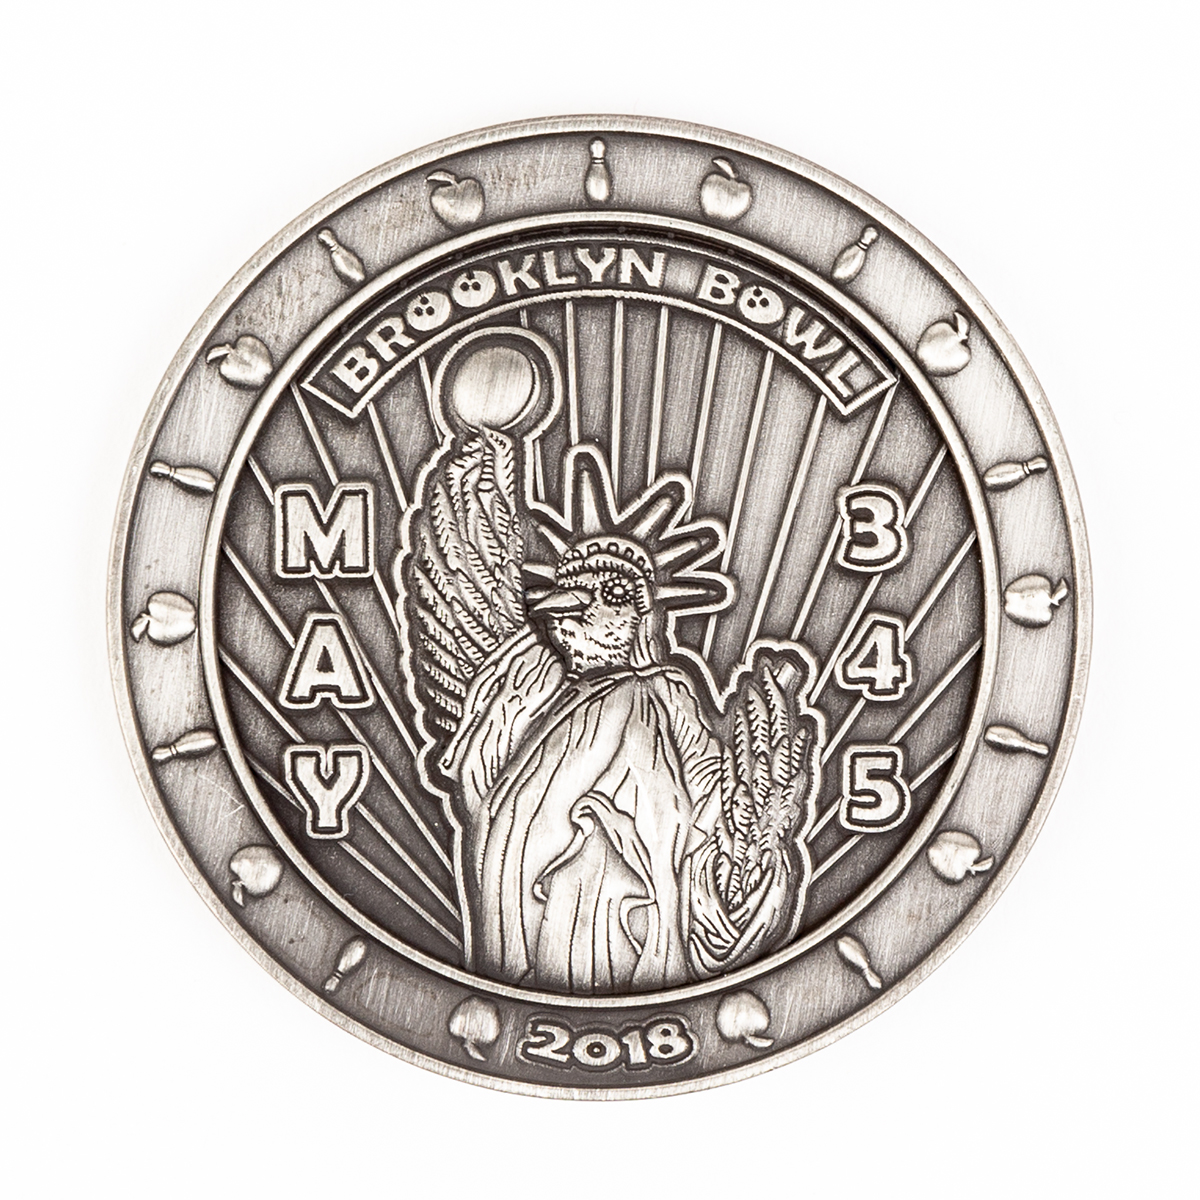 2018 Brooklyn Bowl Commemorative Coin